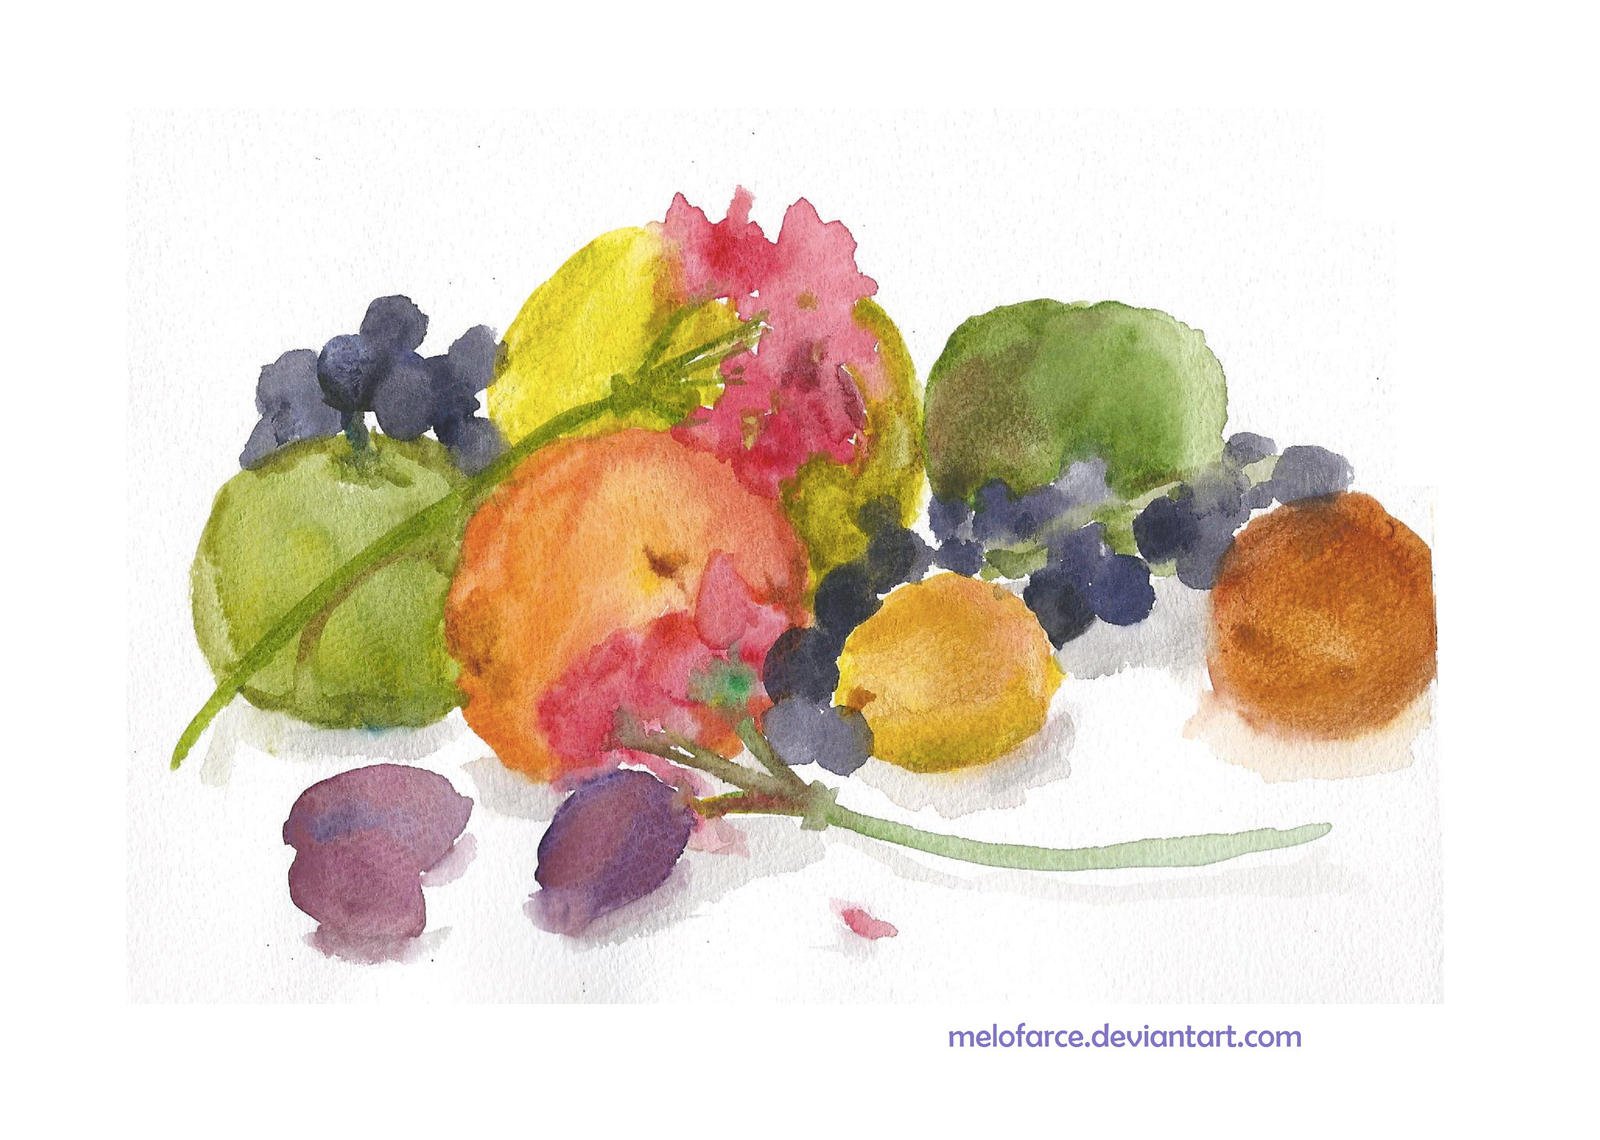 healthiest fruits fruits of their labor